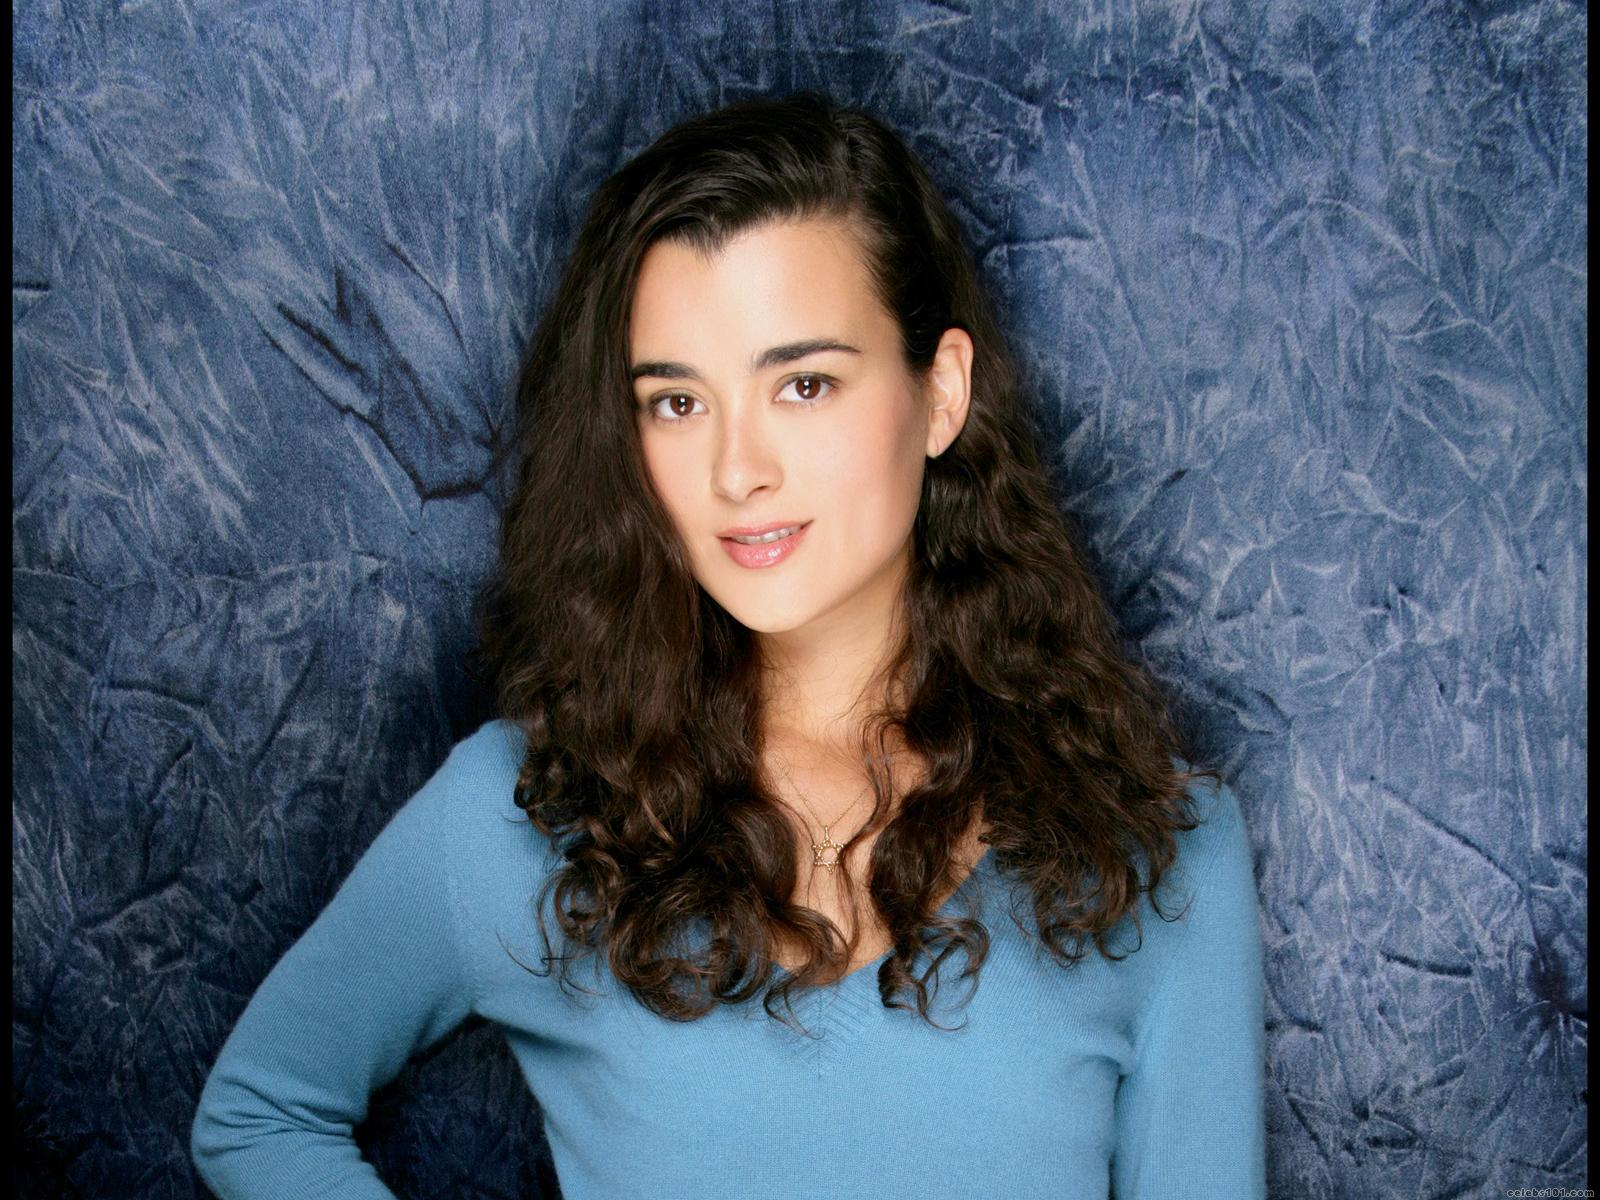 Cote De Pablo Hot 9 Cote De Pablo High quality wallpaper size 1600x1200 of Cote de Pablo x